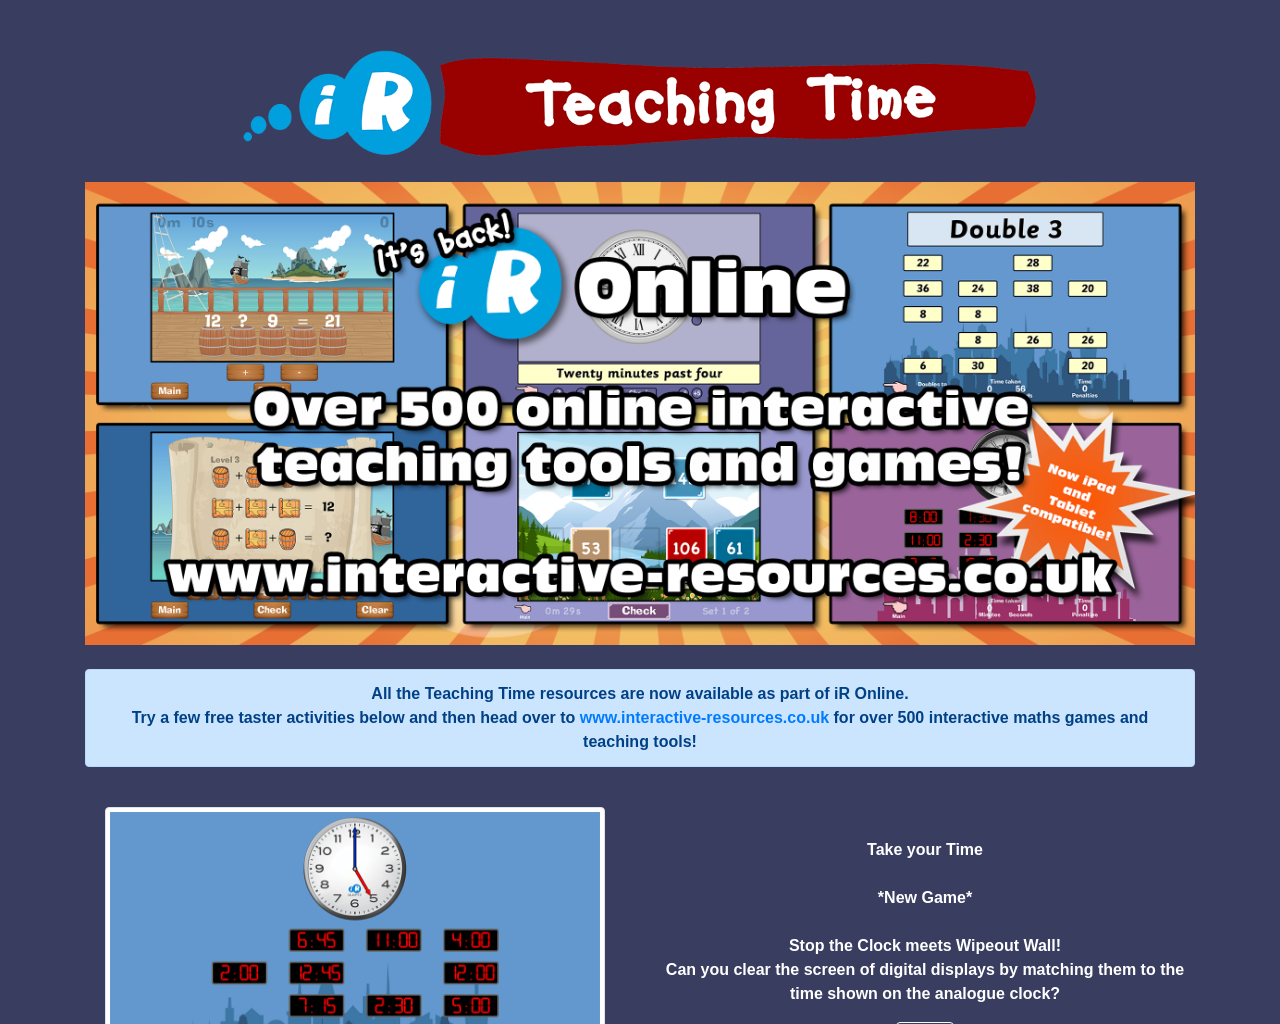 teachingtime.co.uk